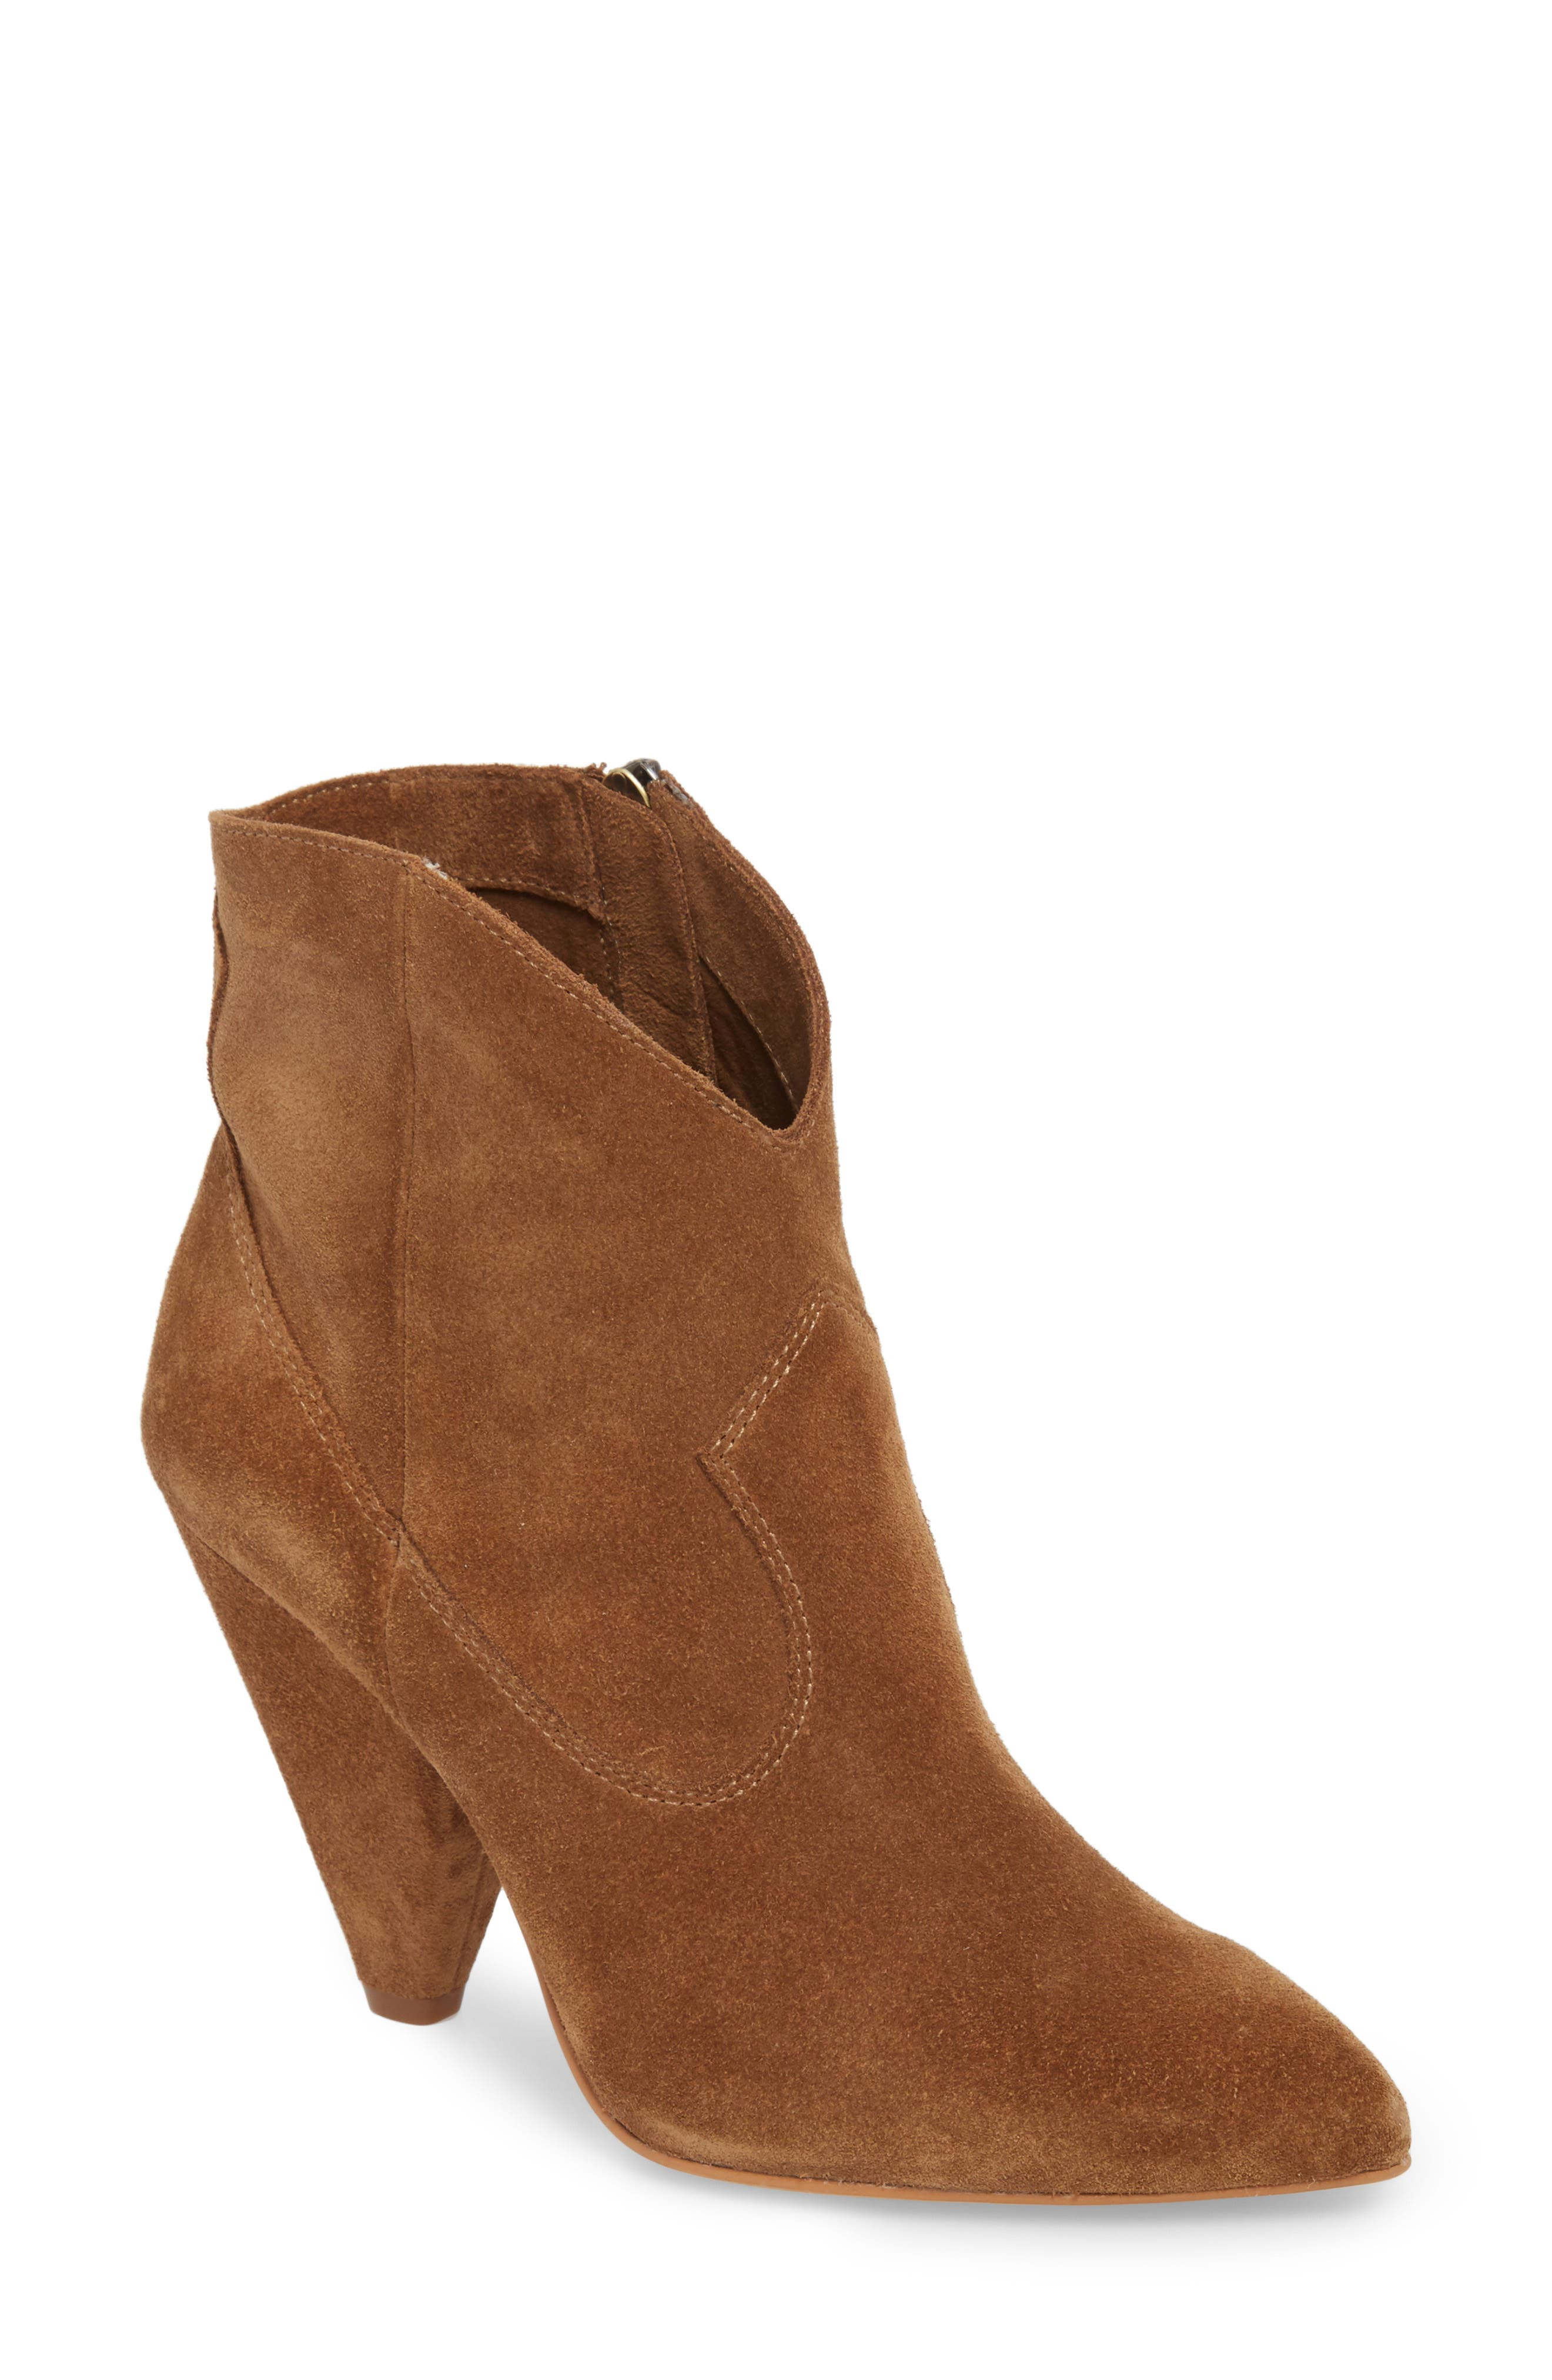 Movinta Bootie,                             Main thumbnail 1, color,                             Tree House Suede